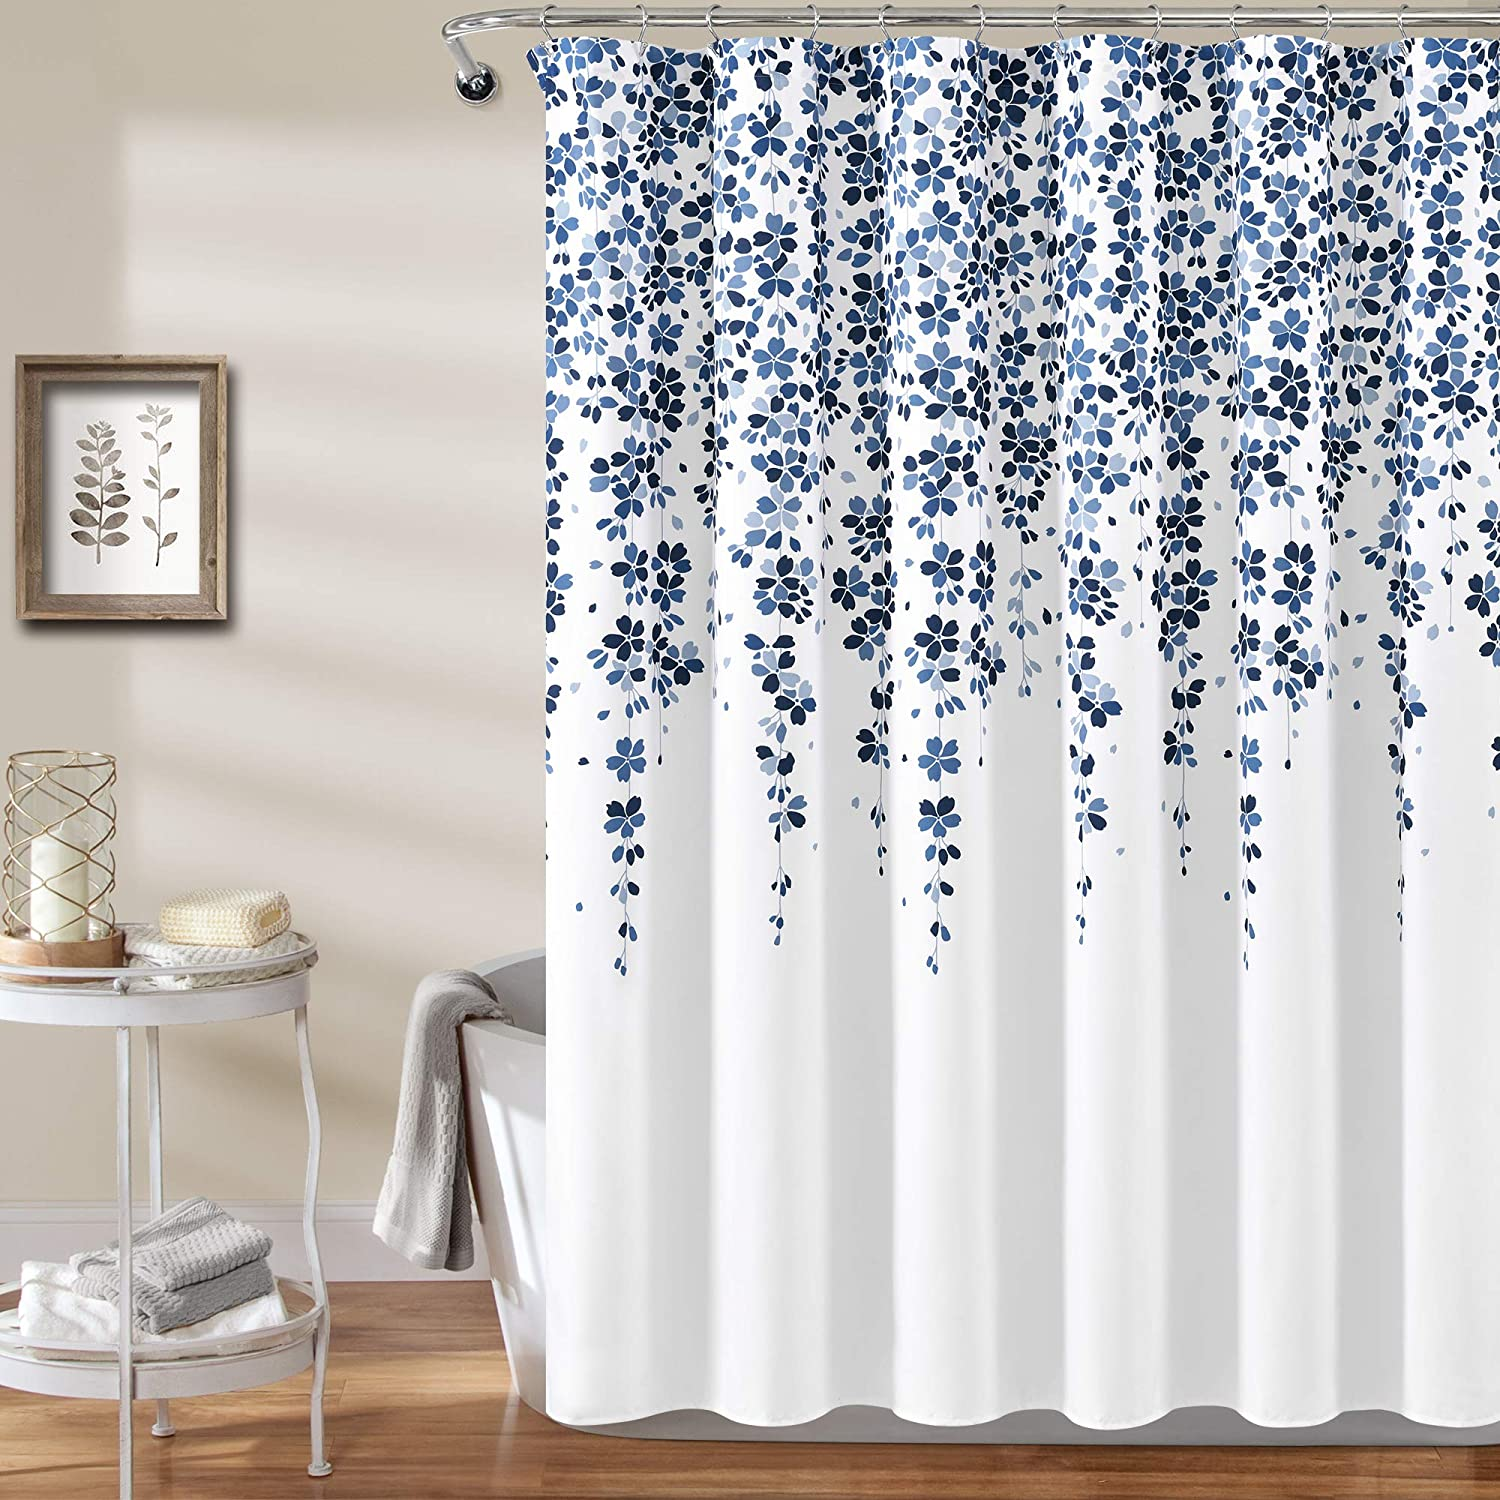 "Lush Decor Weeping Flower Shower Curtain - Fabric Floral Vine Print Design, 72"" x 72"", Navy and Blue"